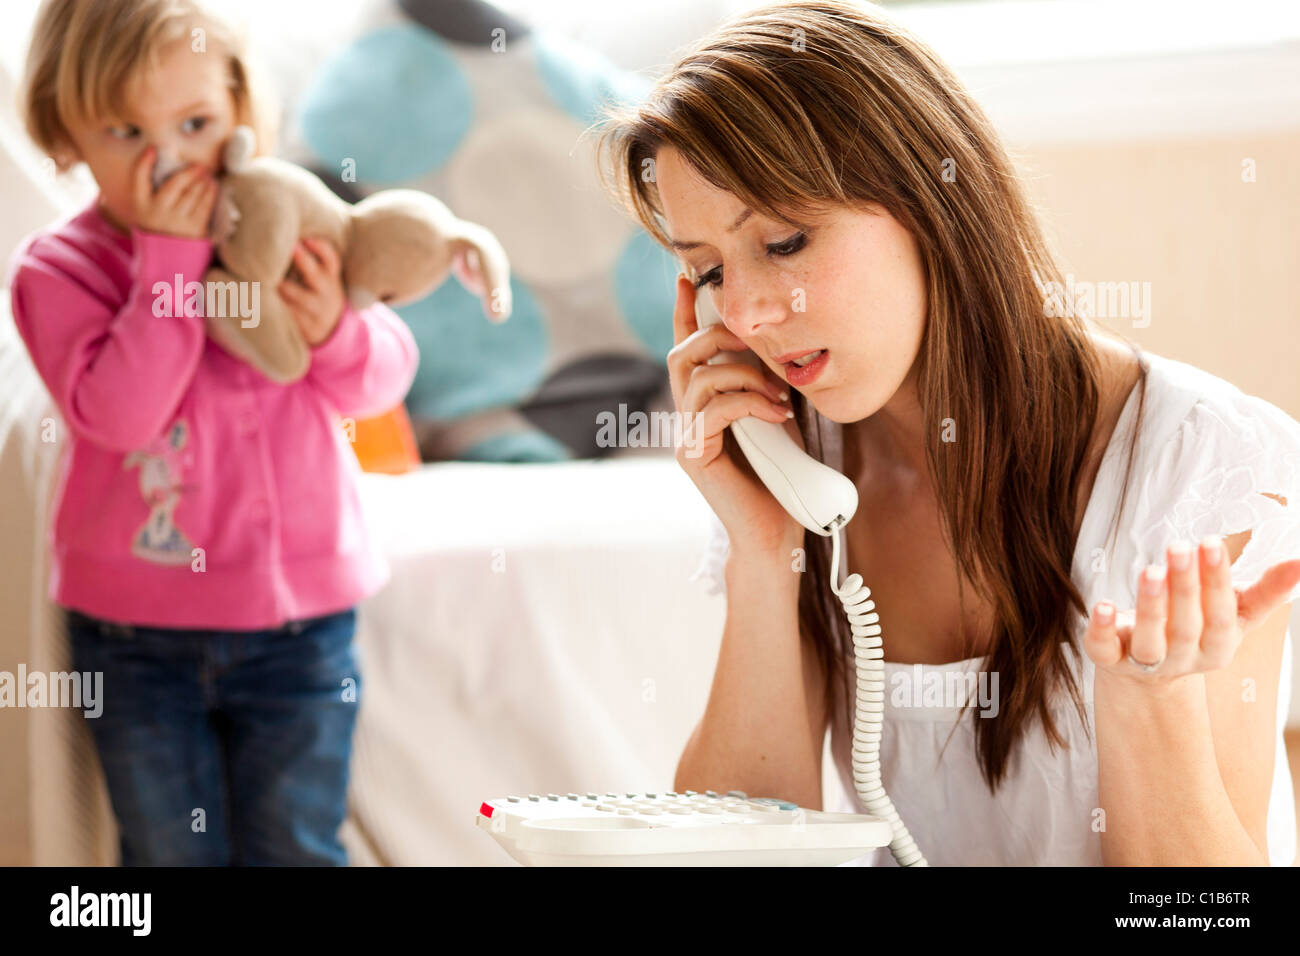 Woman on phone with child in background - Stock Image